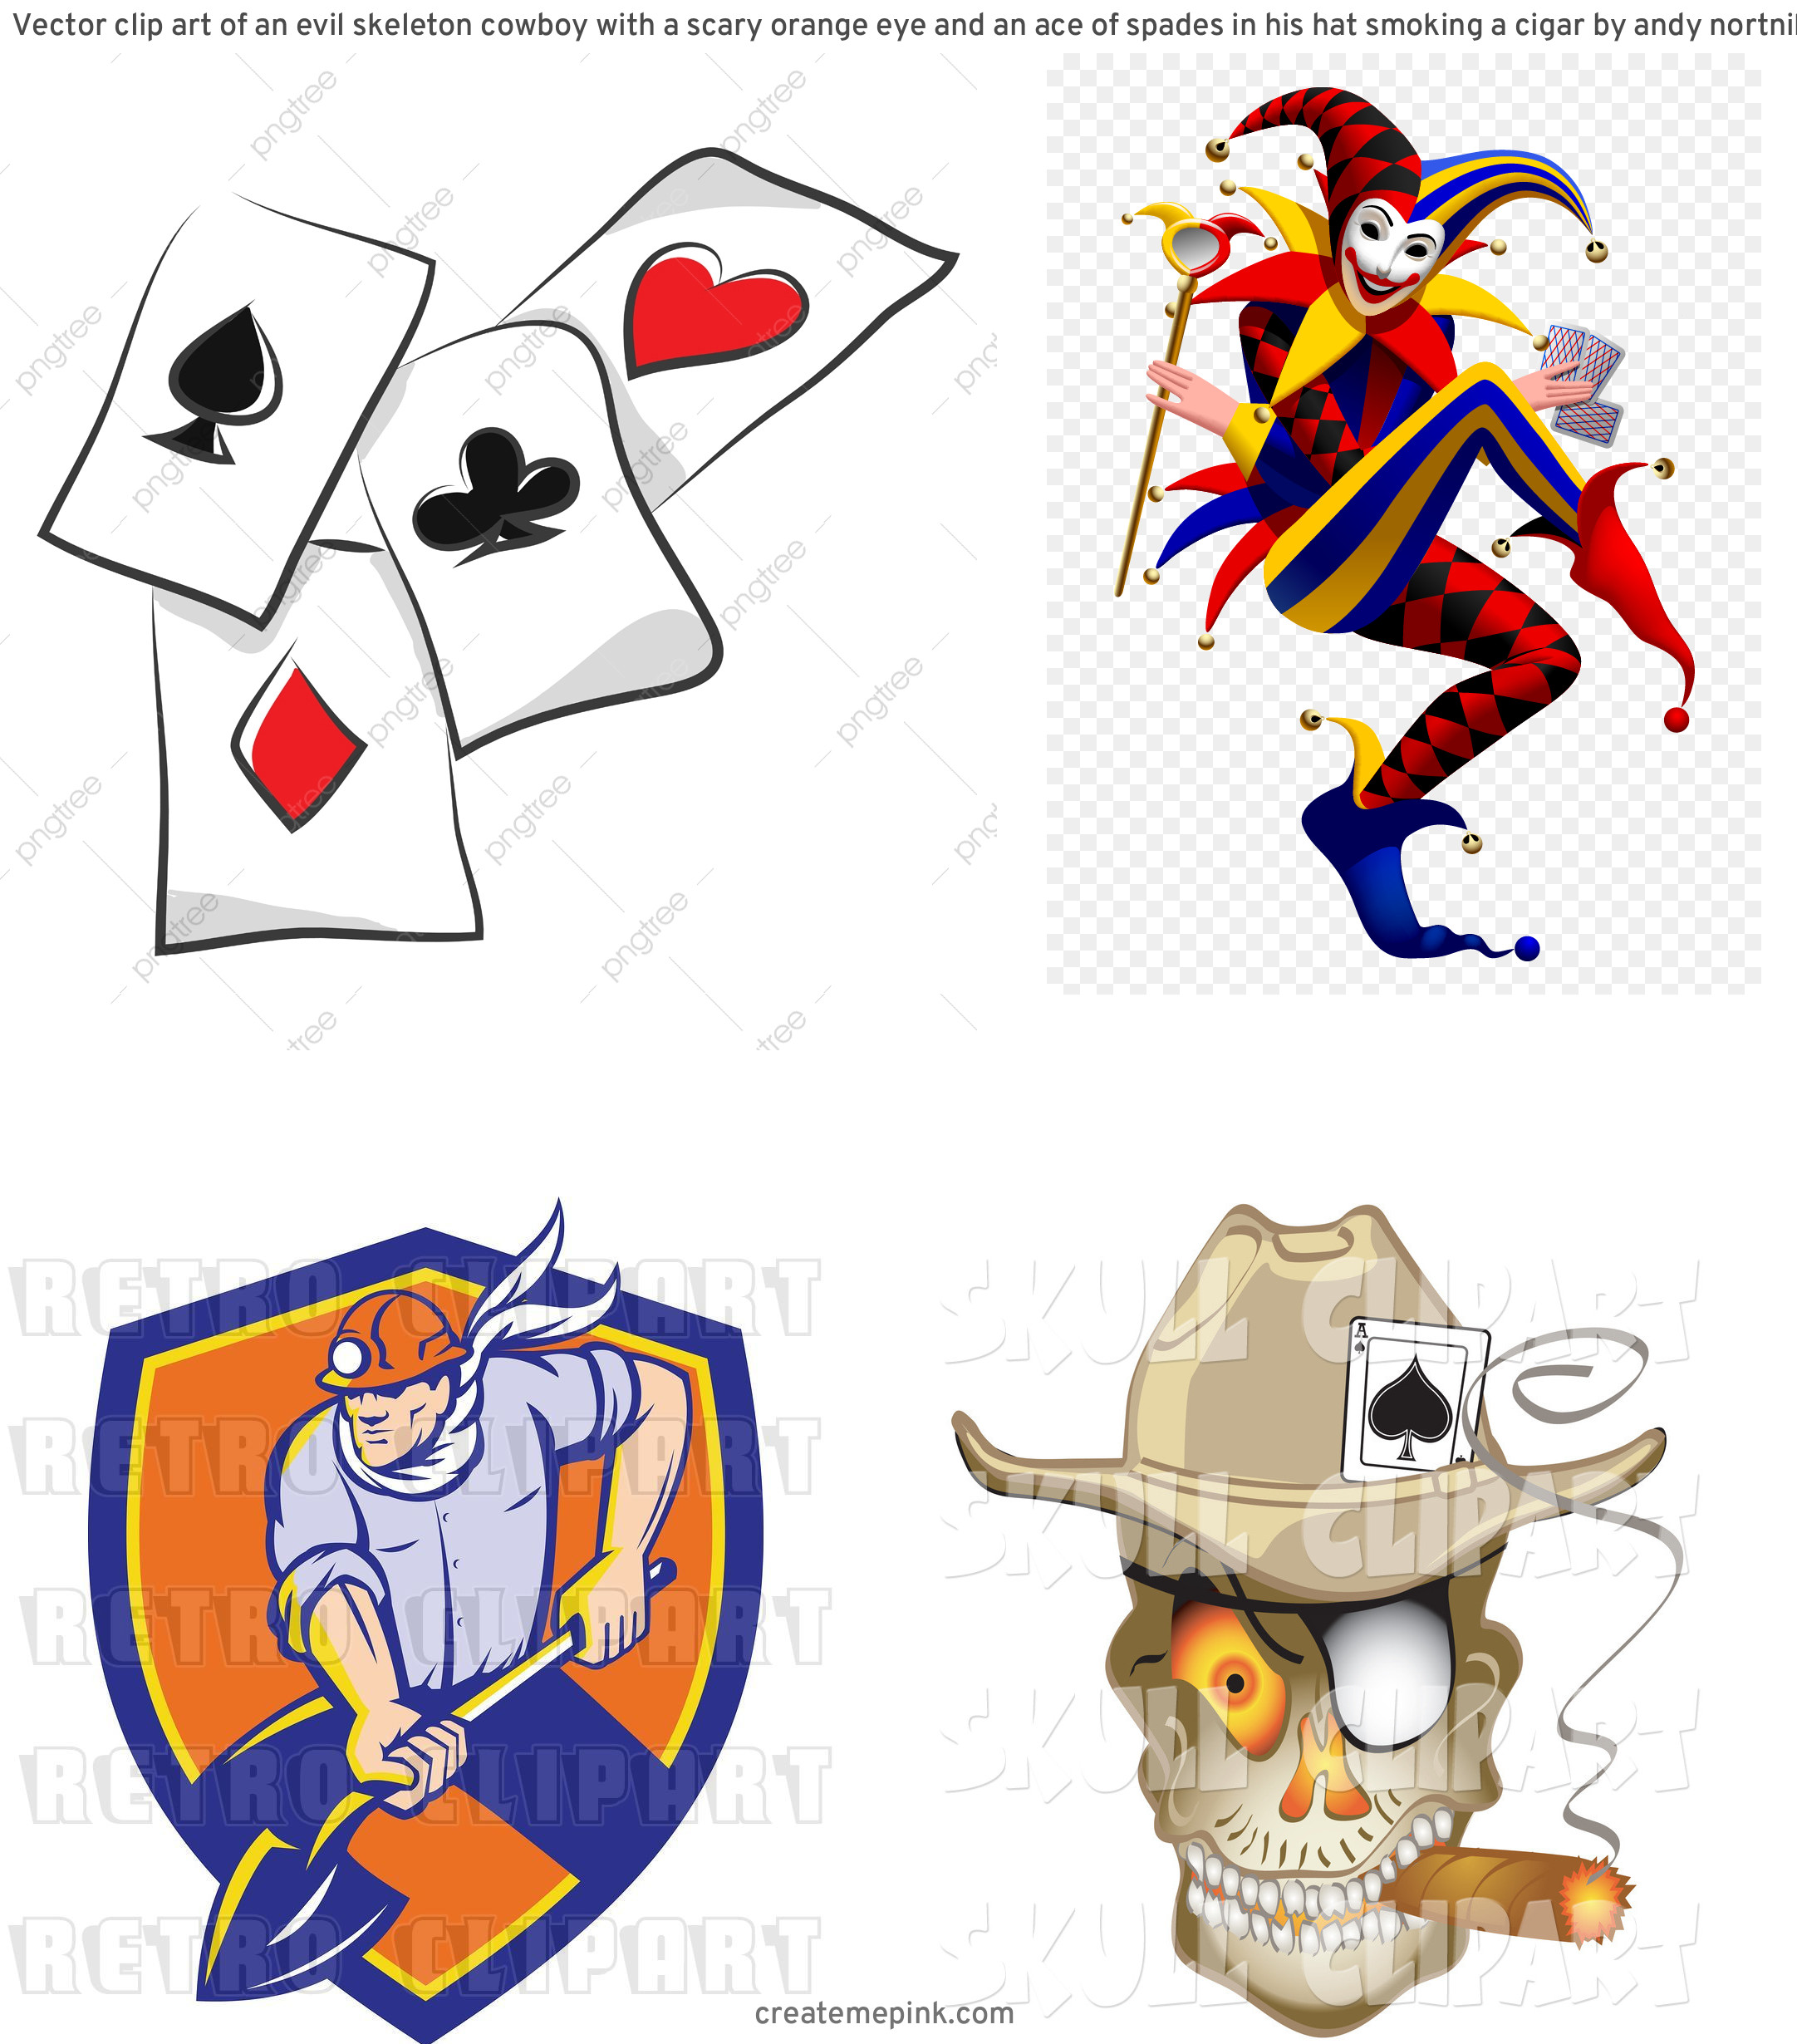 Spade Vector Clip Art: Vector Clip Art Of An Evil Skeleton Cowboy With A Scary Orange Eye And An Ace Of Spades In His Hat Smoking A Cigar By Andy Nortnik